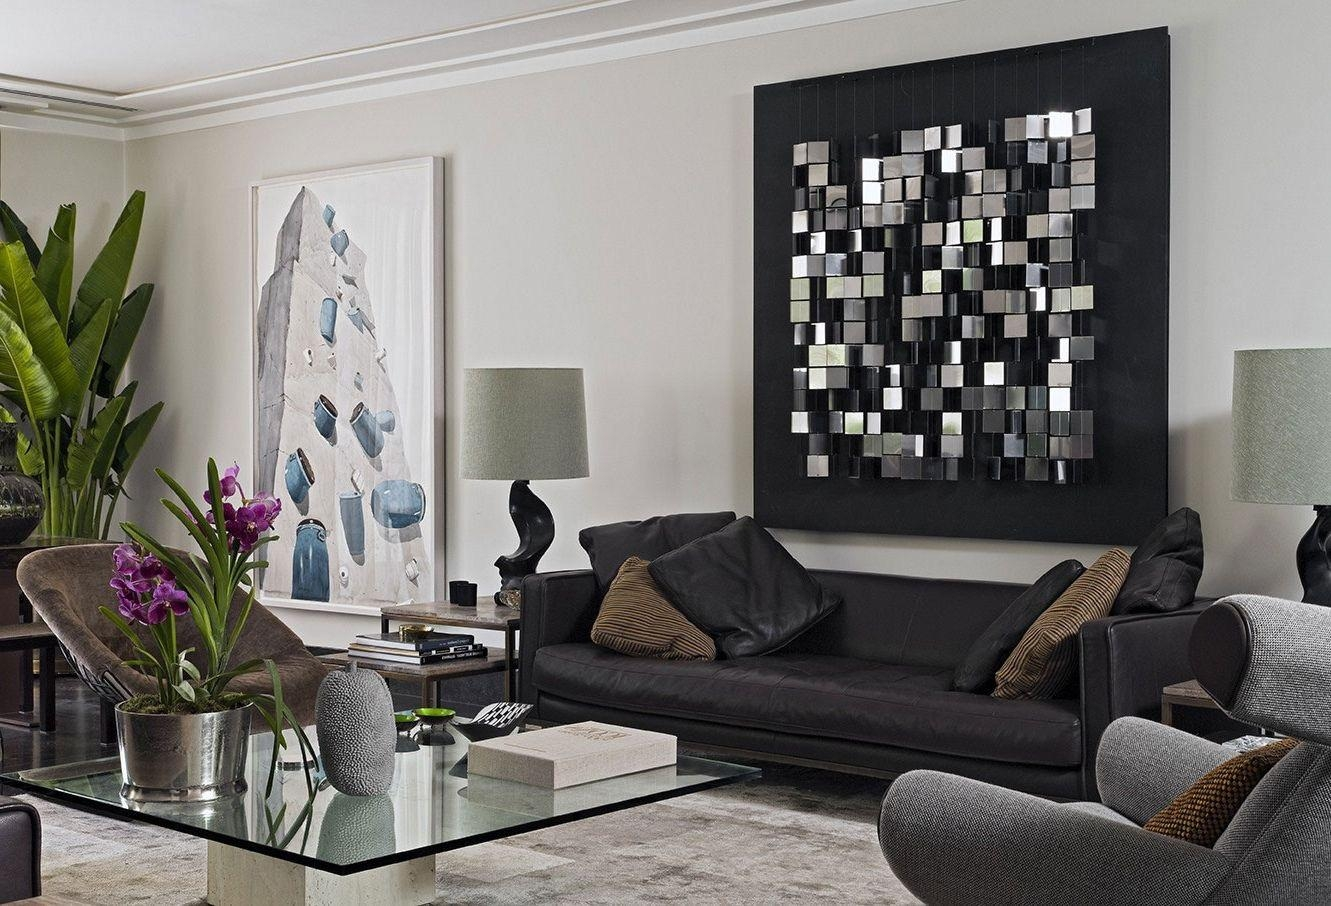 Classy Inspiration 16 Living Room Wall Art Ideas – Home Design Ideas Throughout Classy Wall Art (Image 6 of 20)